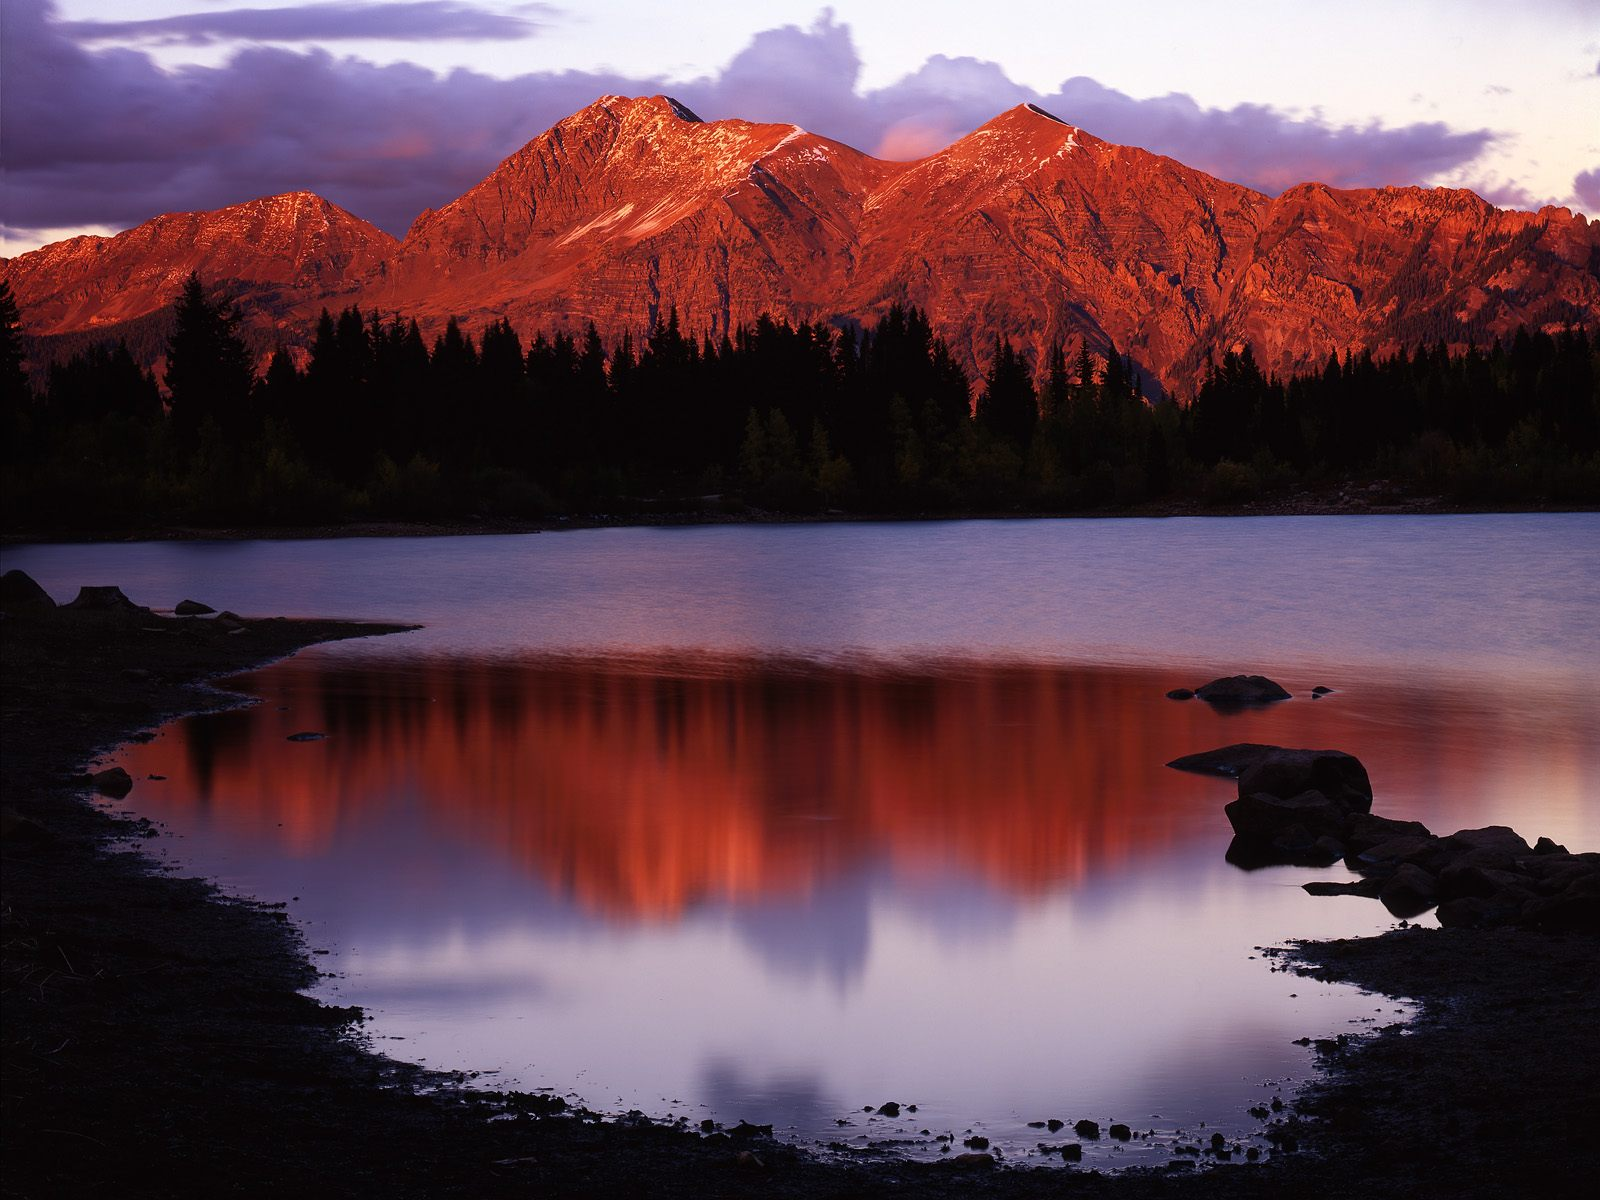 Sunset Glow on Lost Lake and the Ruby Range Gunnison National Forest Colorado 1600 x 1200